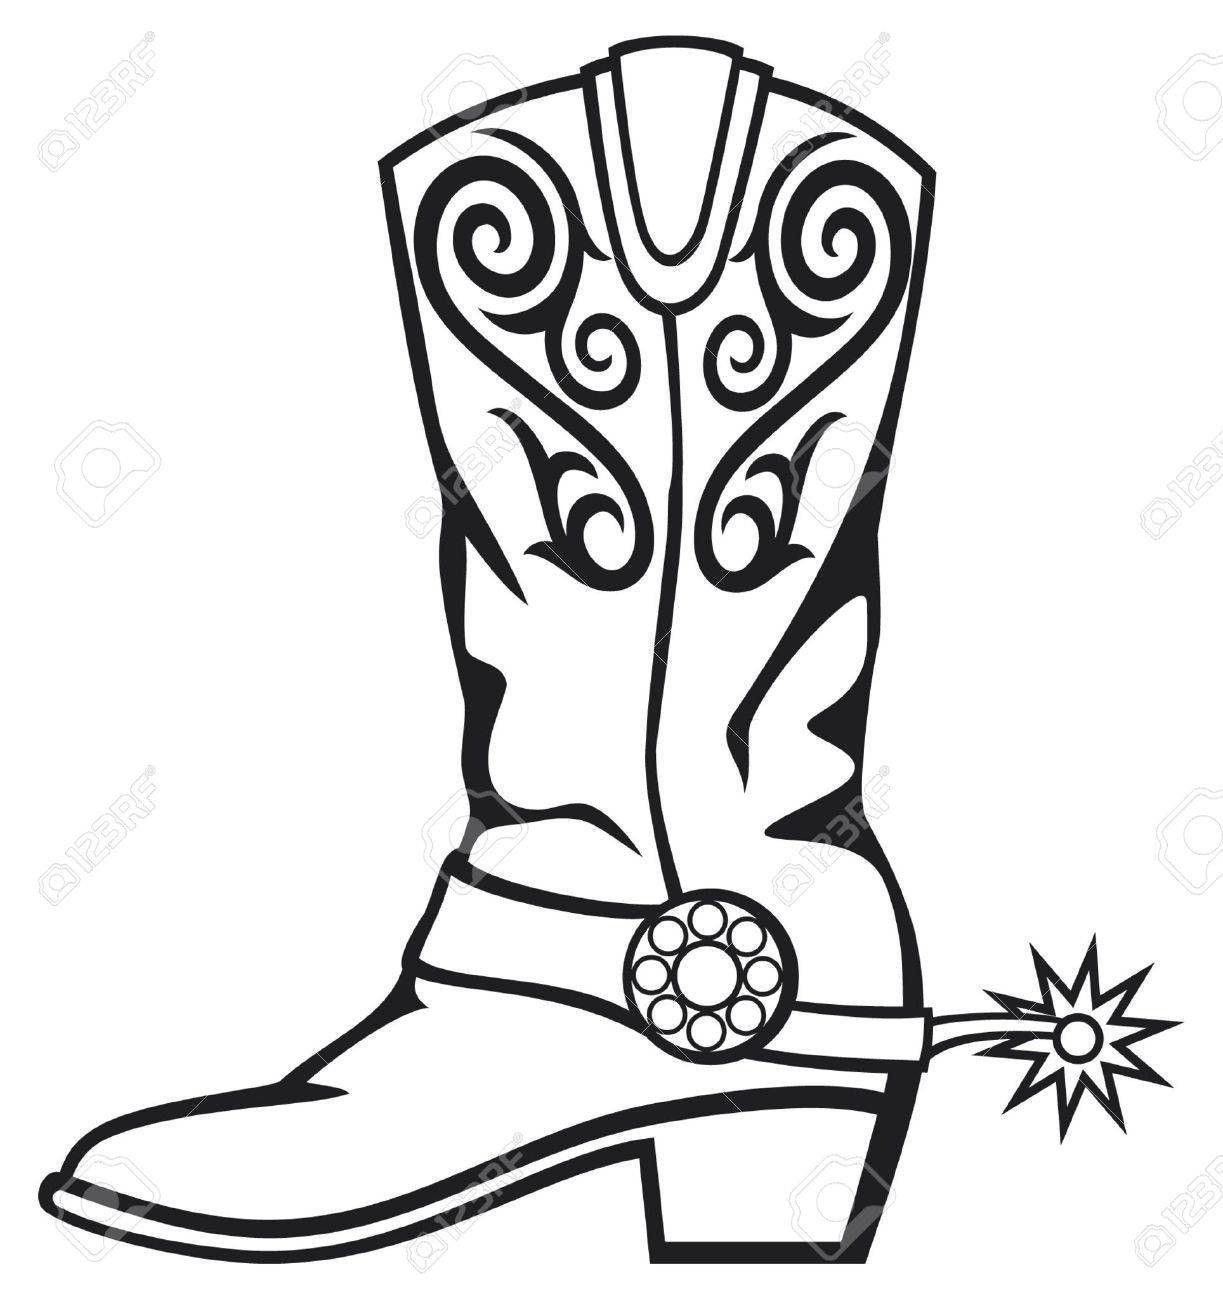 Free commercial use cowboy spurs clipart black and white stock boots clipart western boot #448 | Collage quilt ideas | Cowboy boots ... black and white stock